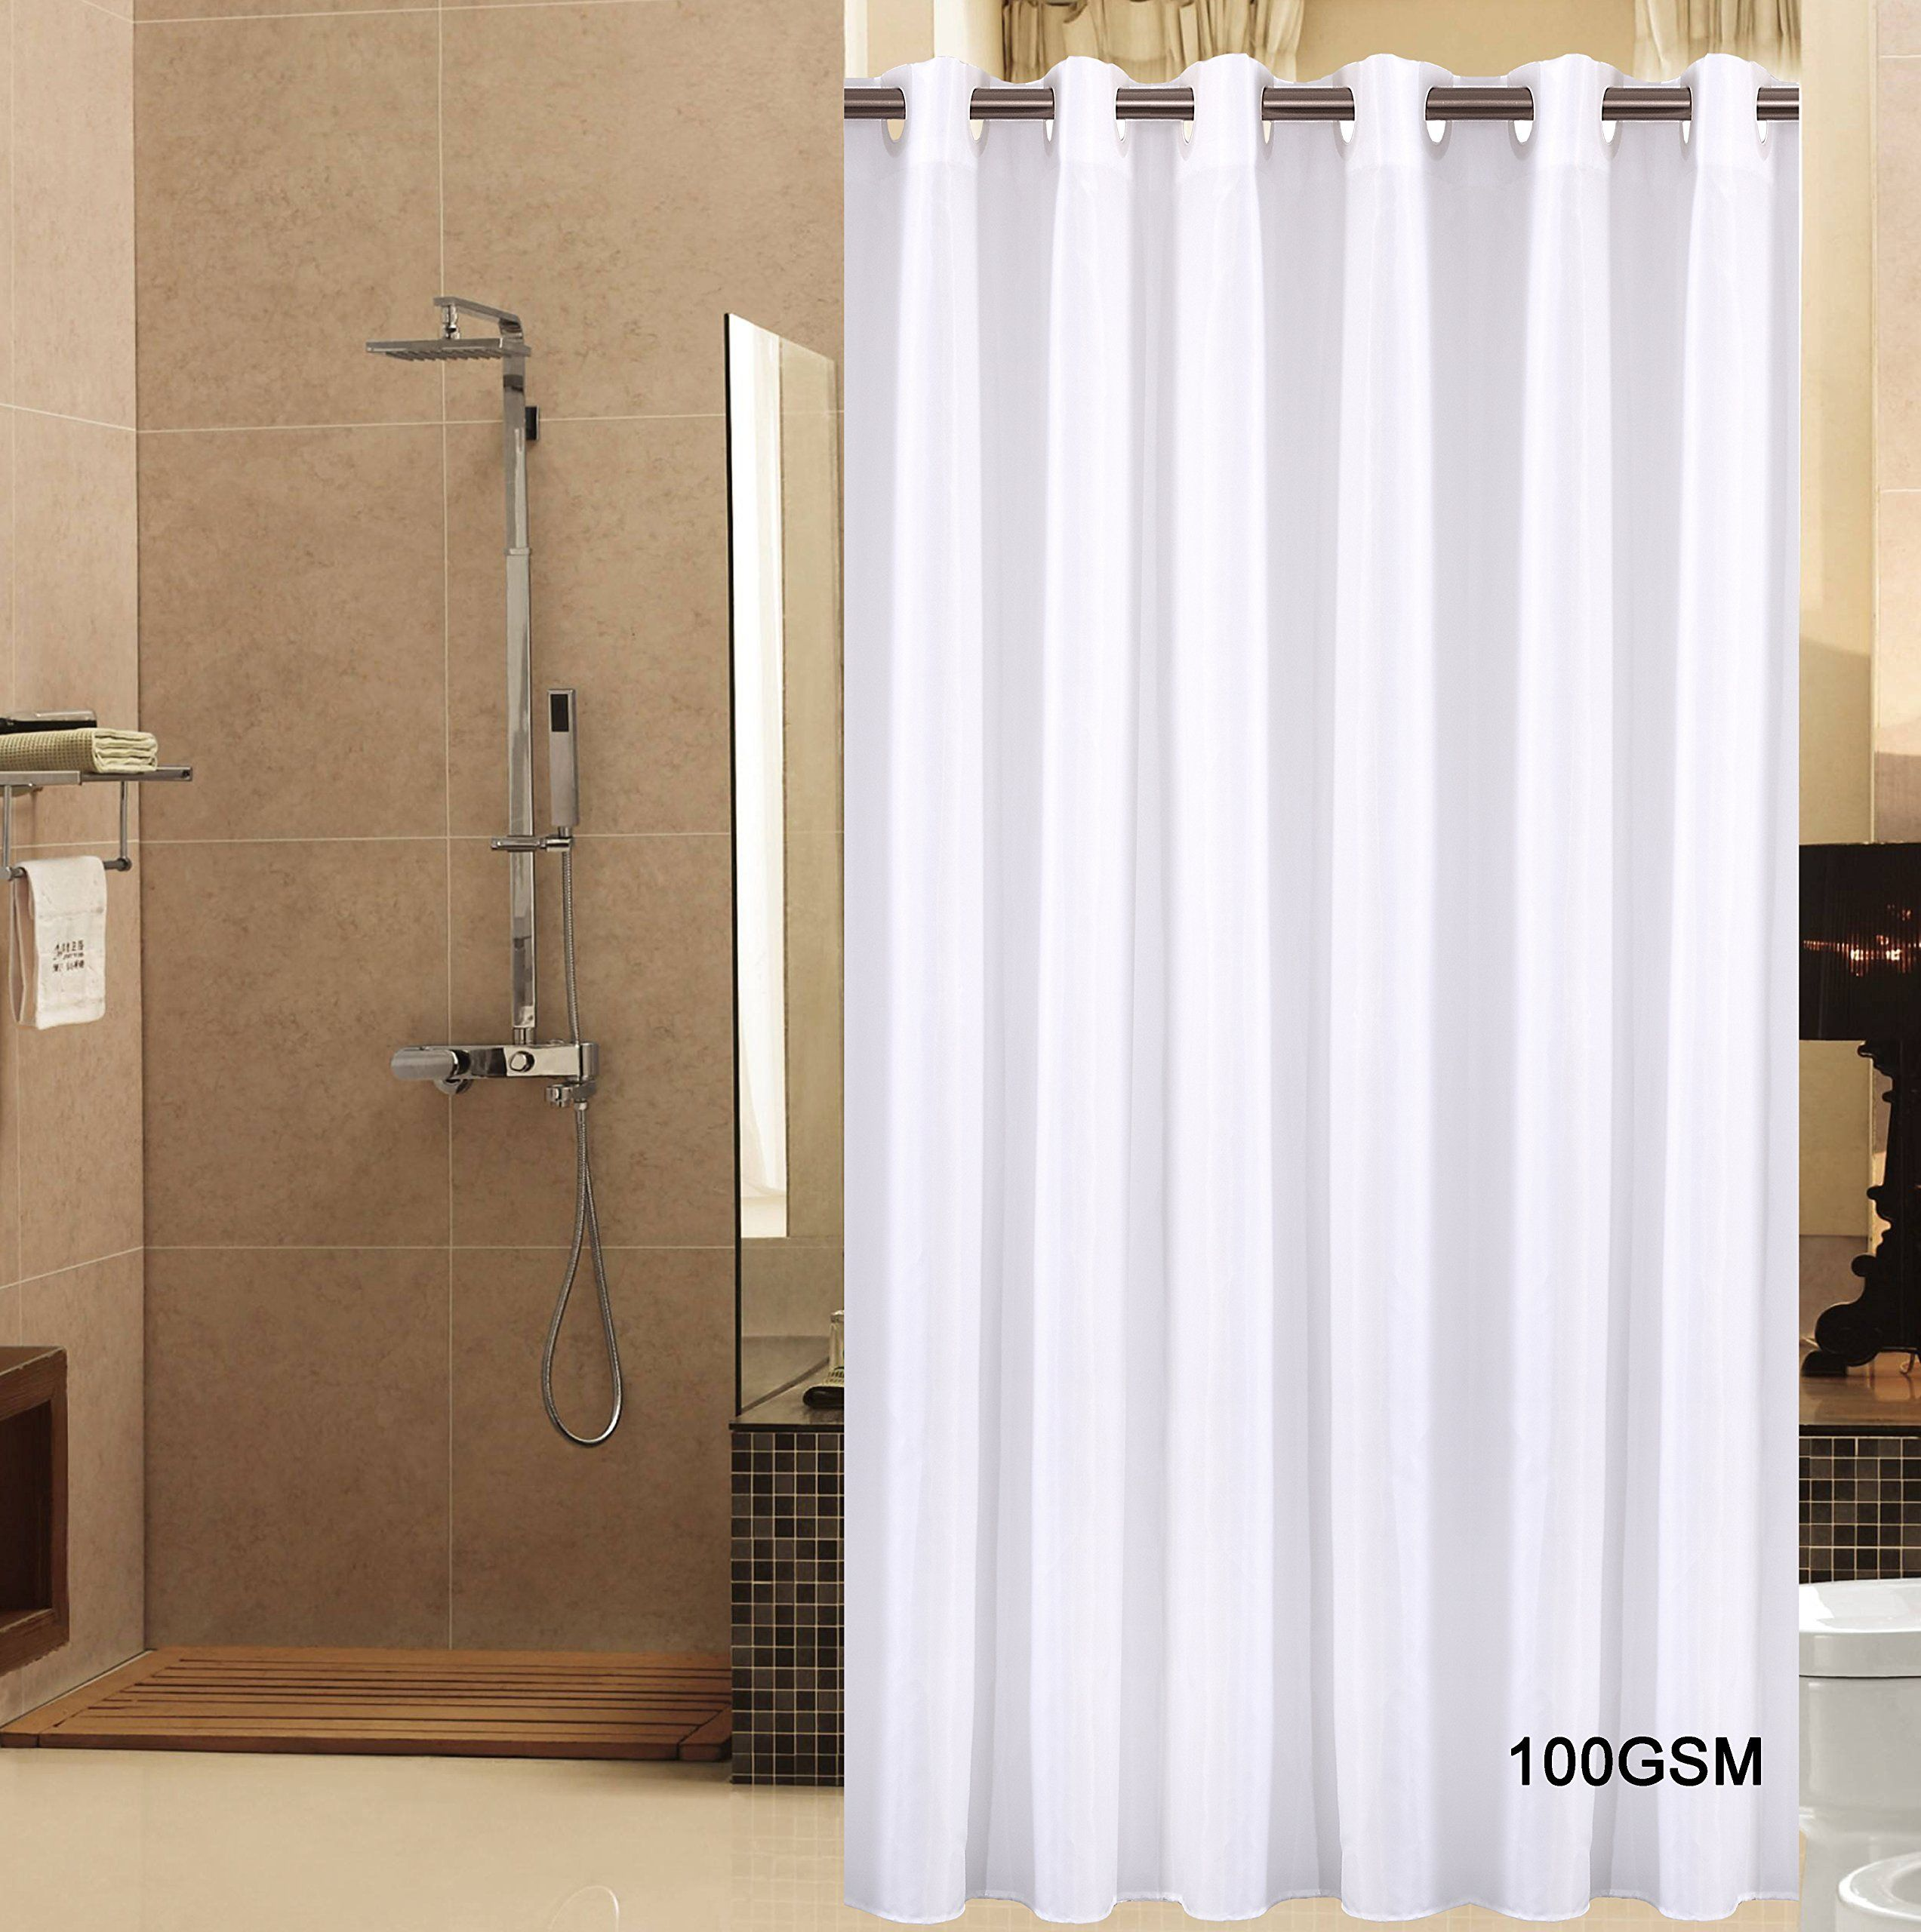 Sfoothome Small Polyester Shower Curtain Waterproof No More Mildews Bathroom Hookless CurtainsWhite